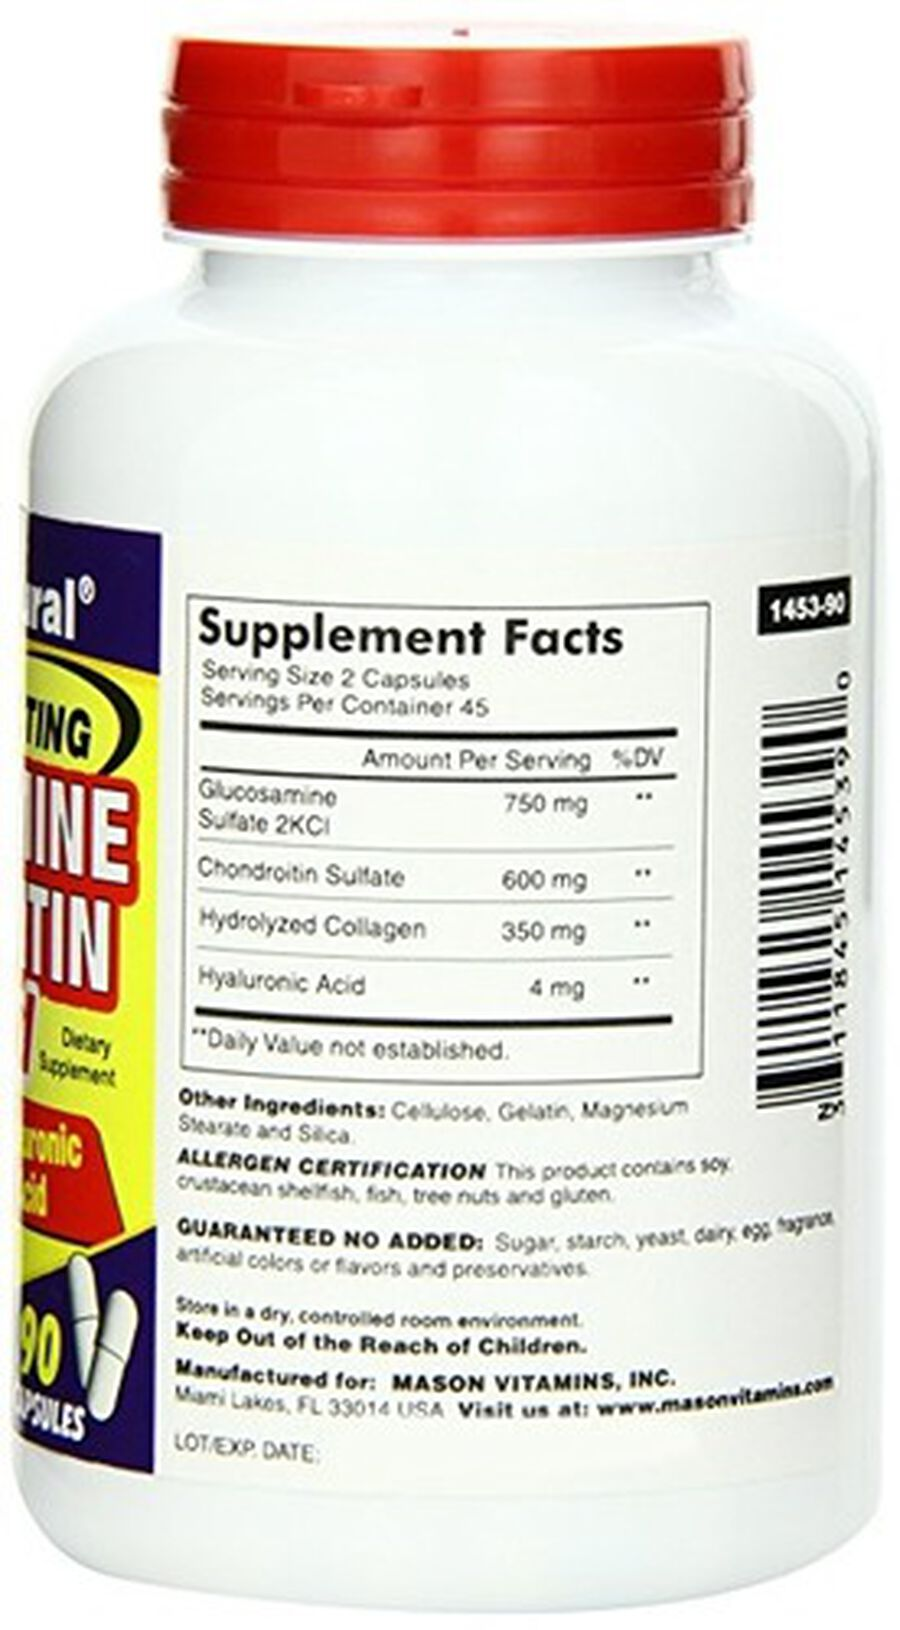 Mason Natural Glucosamine Chondroitin Advance with Collagen & Hyaluronic Acid, Capsules 90 ea, , large image number 2